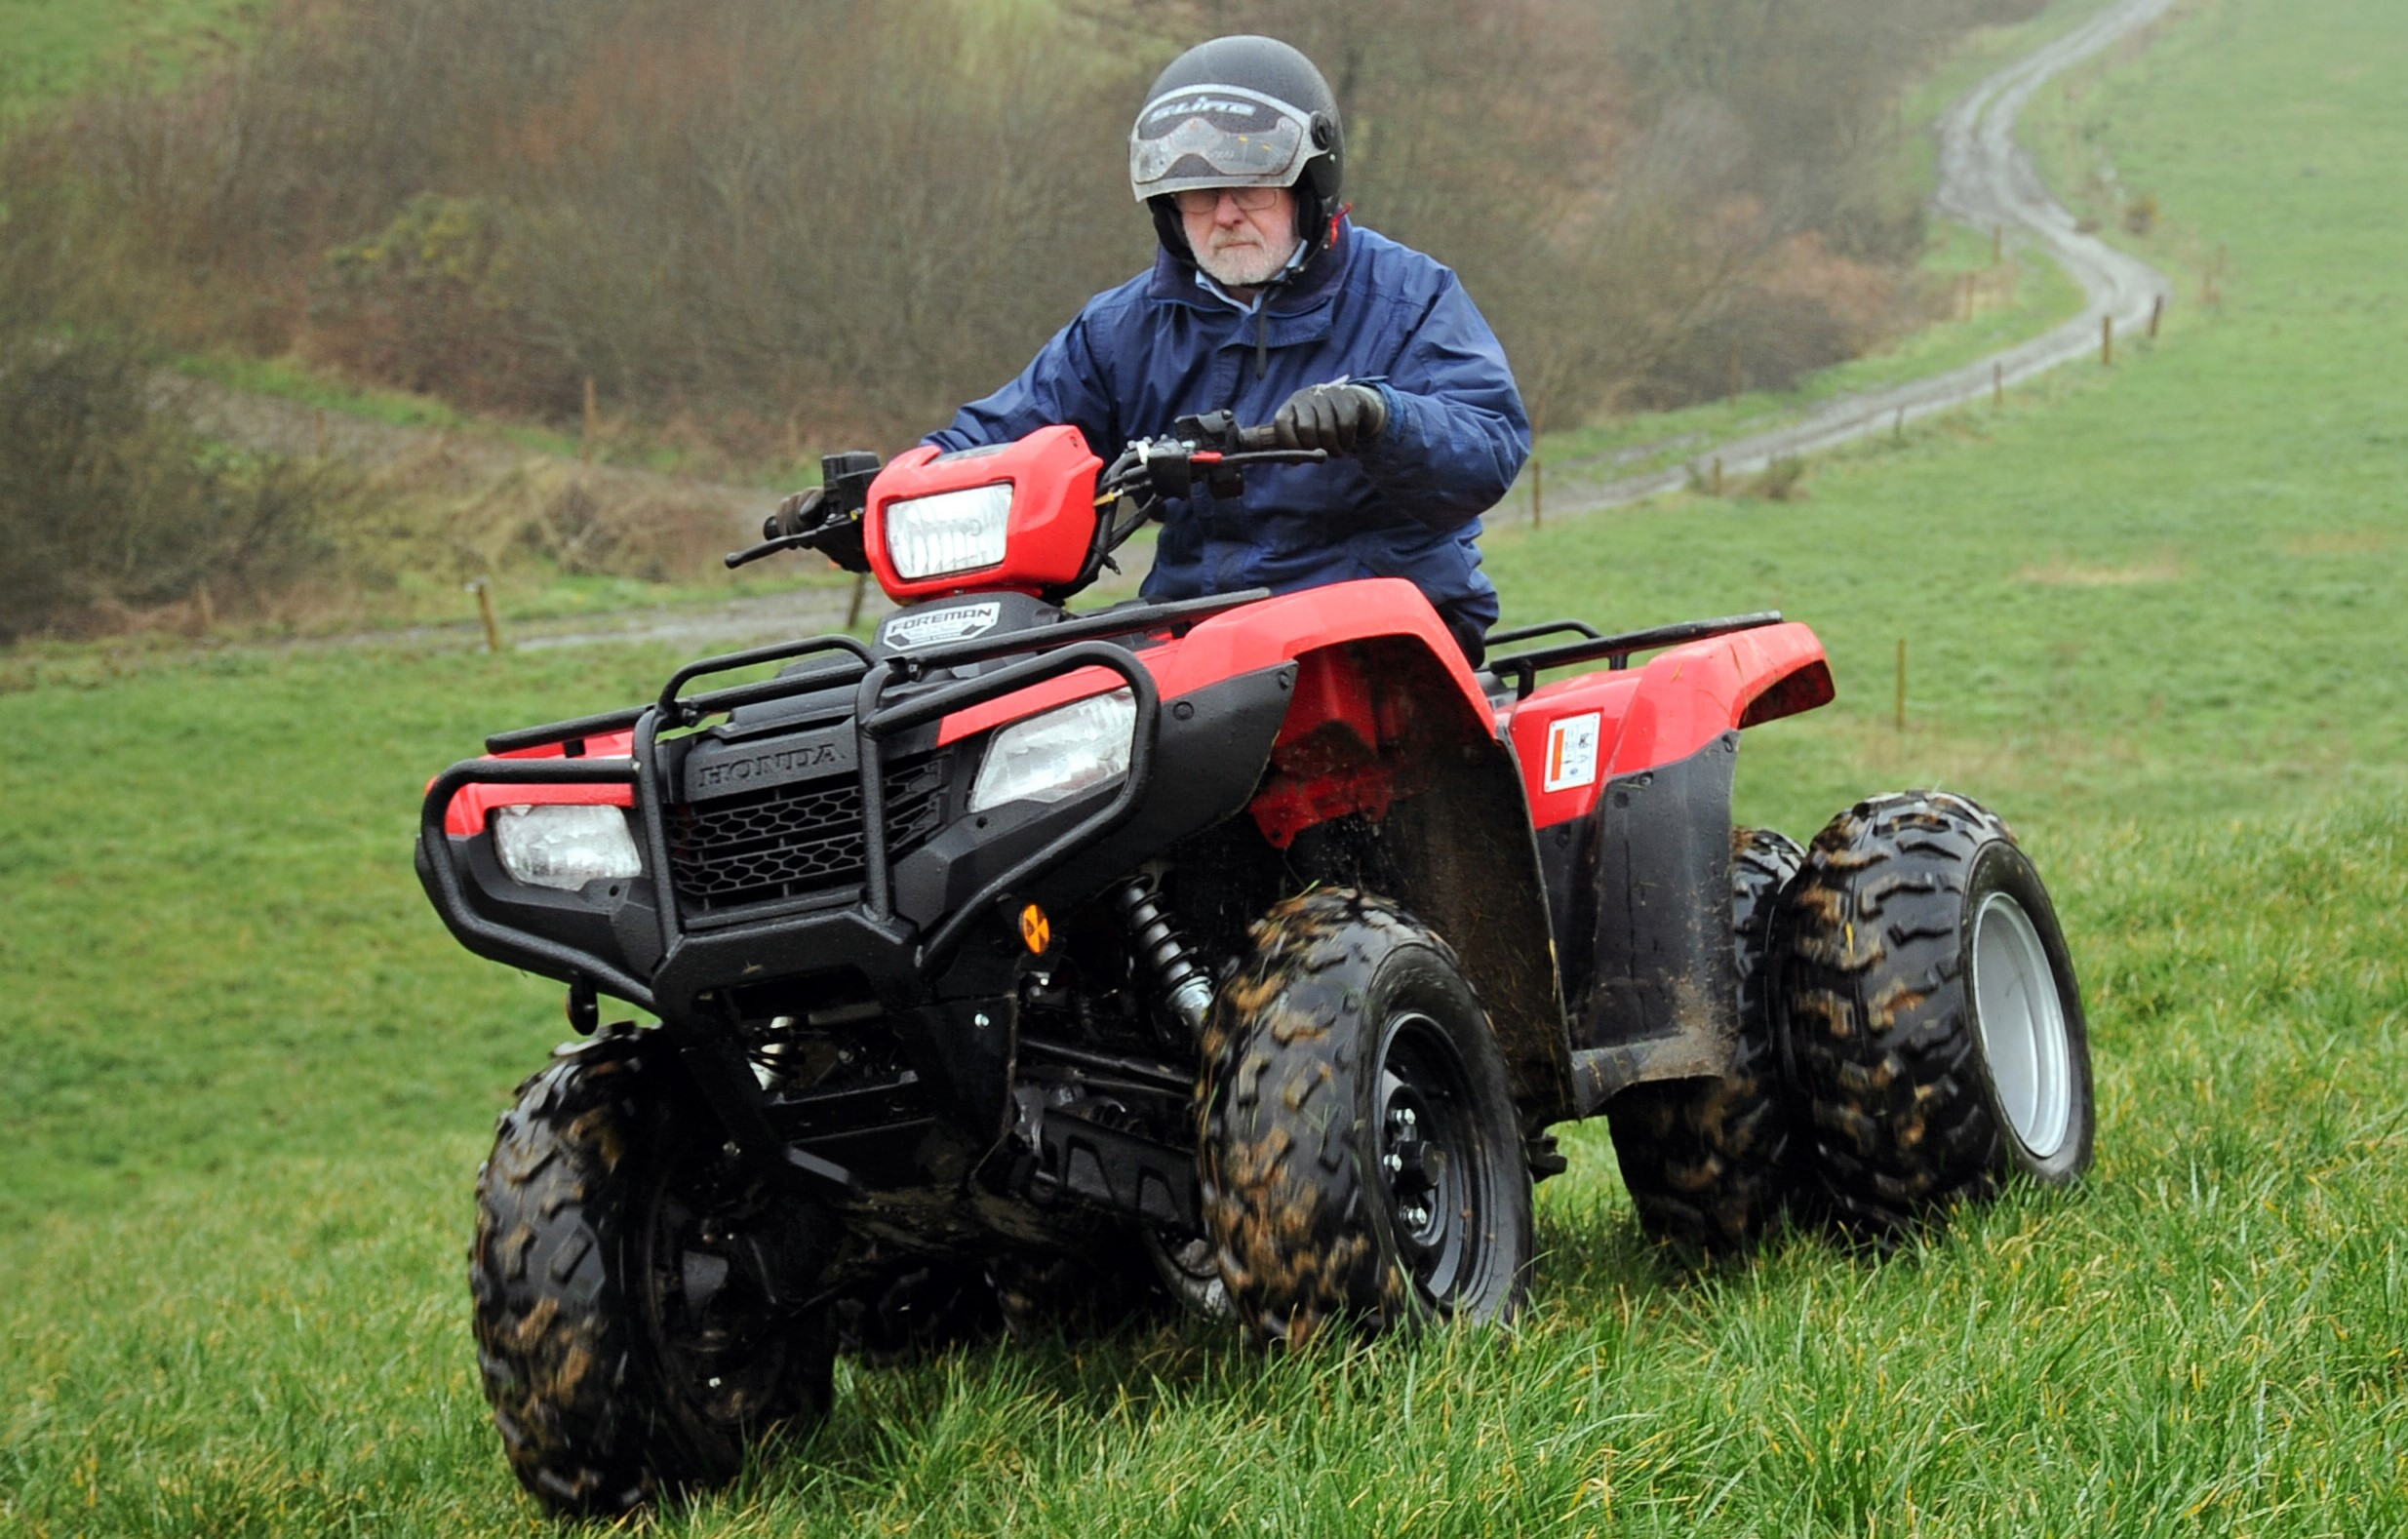 Honda Quads - Farm ATV / Quads for sale for Galway, Mayo, Sligo, Leitrim, Roscommon with McHale Agri - ideal for farms